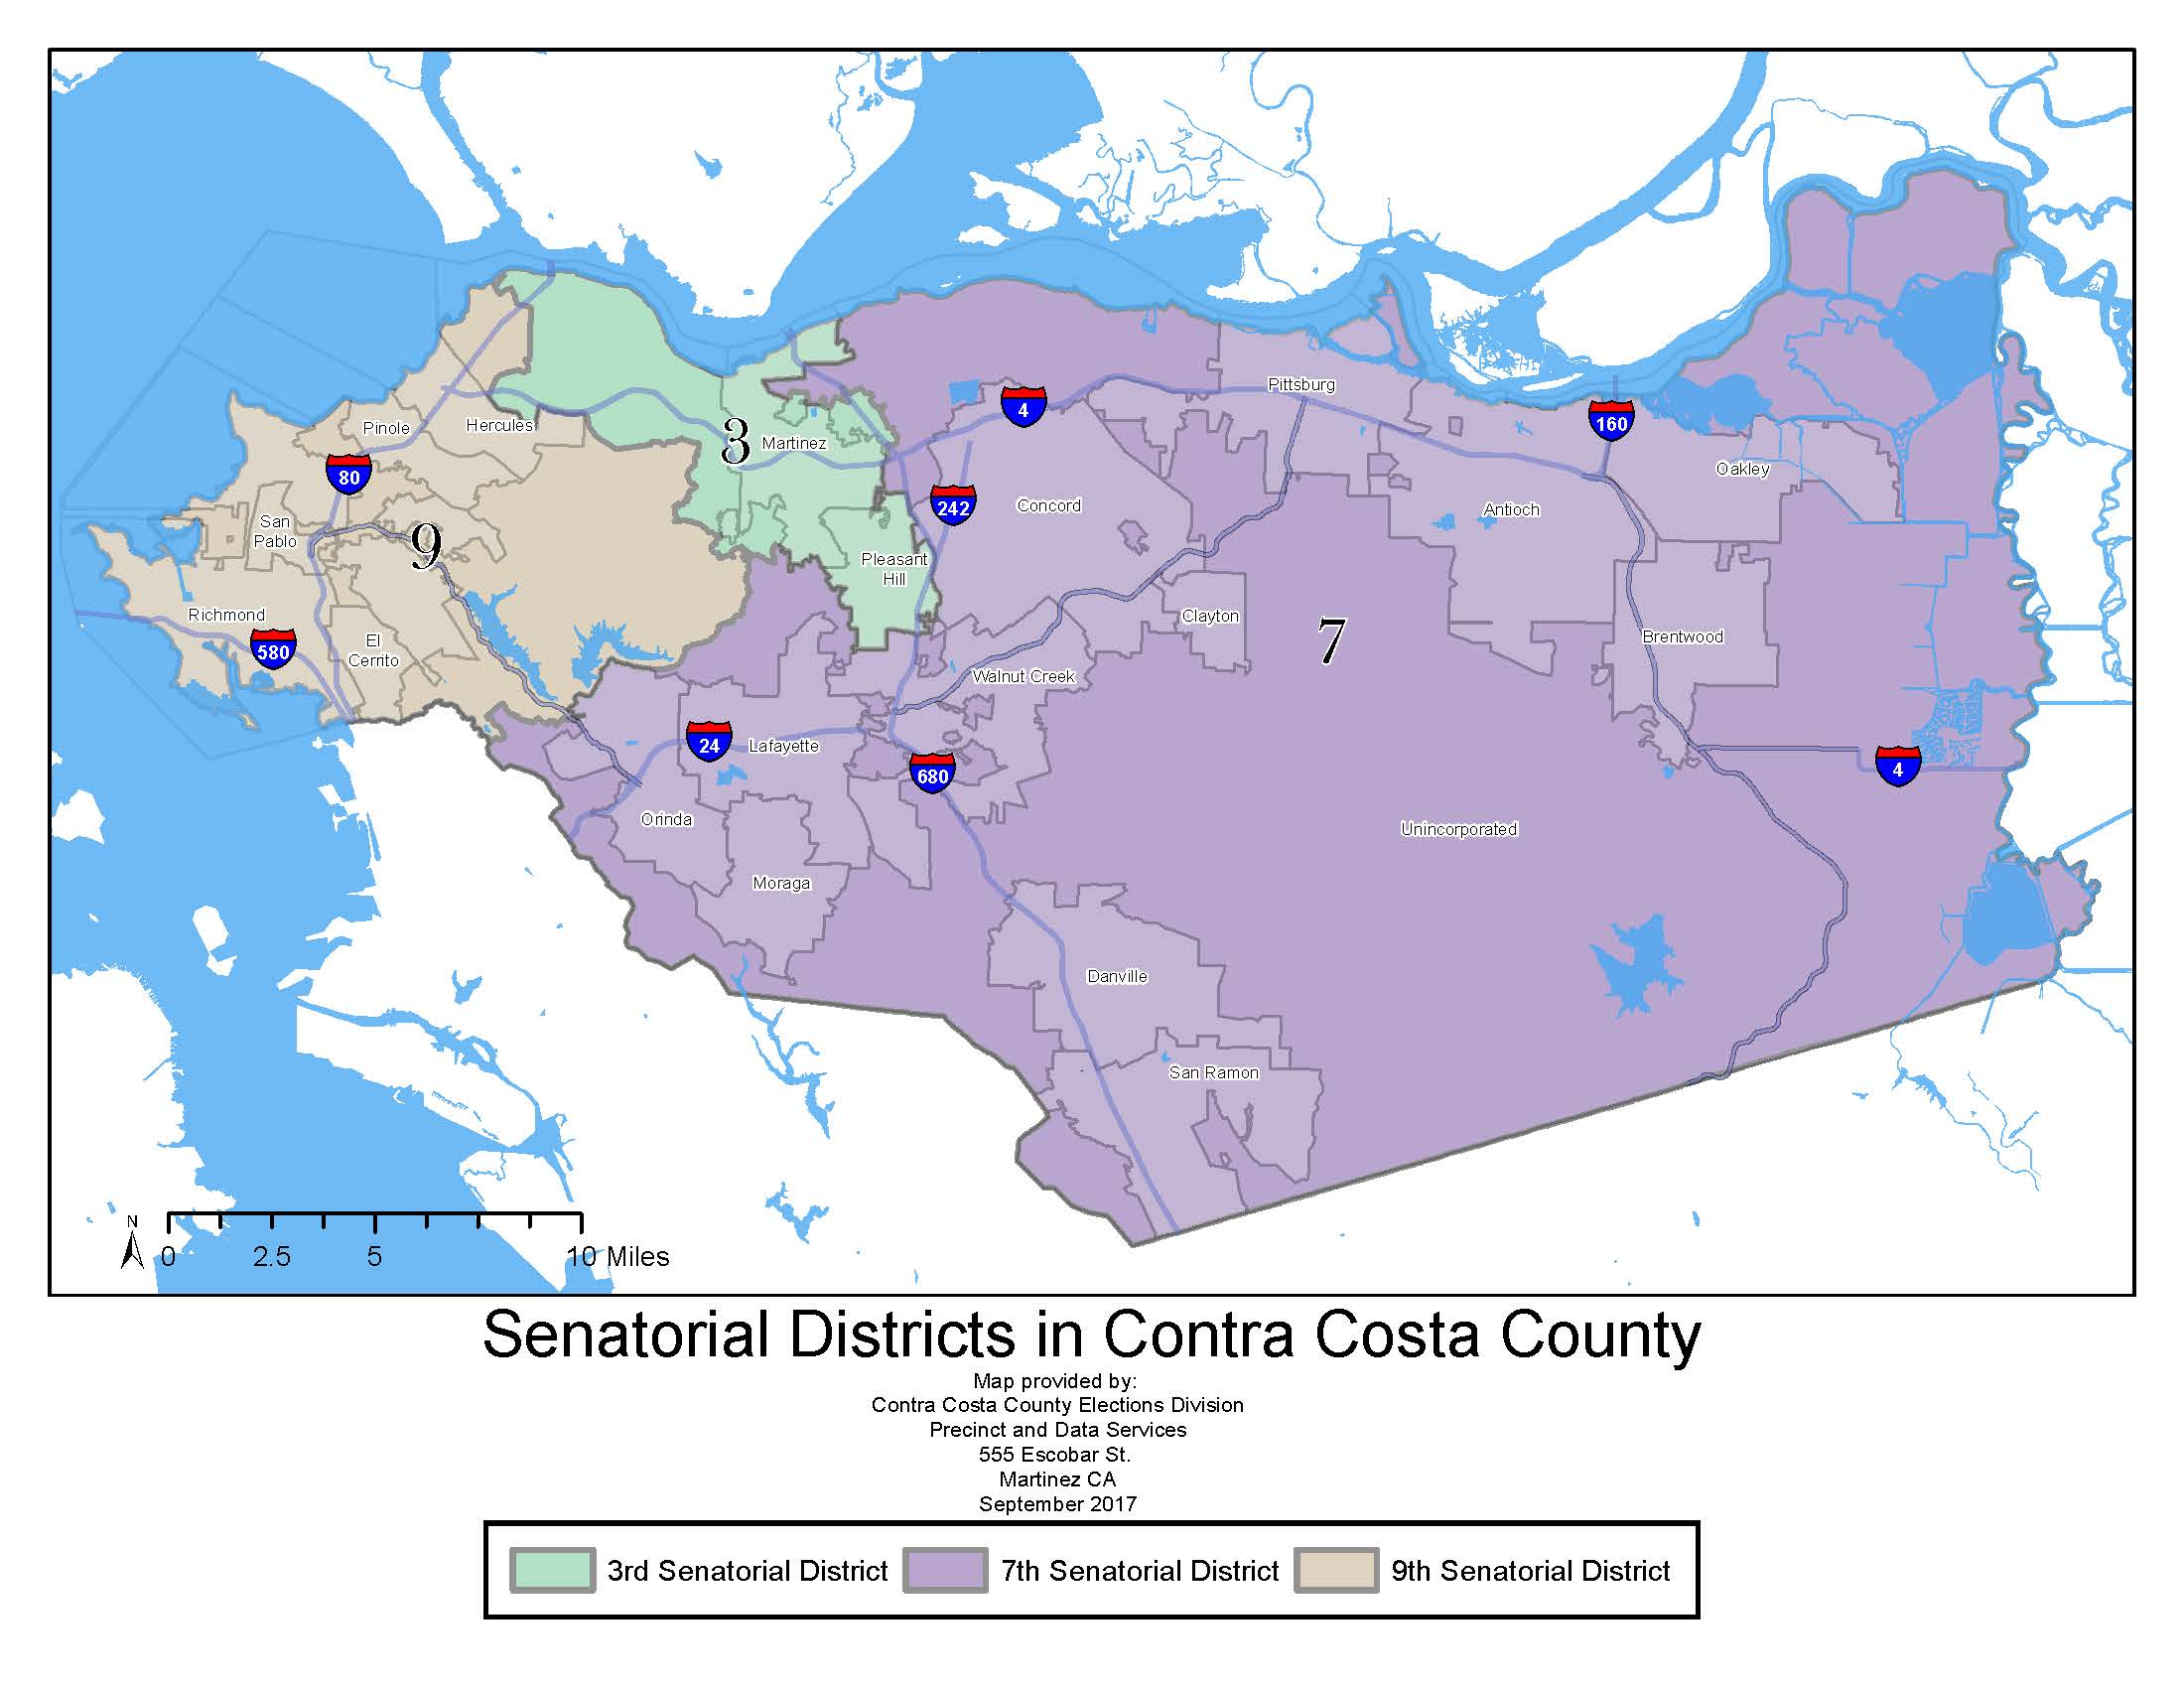 Map of Senatorial Districts in Contra Costa County